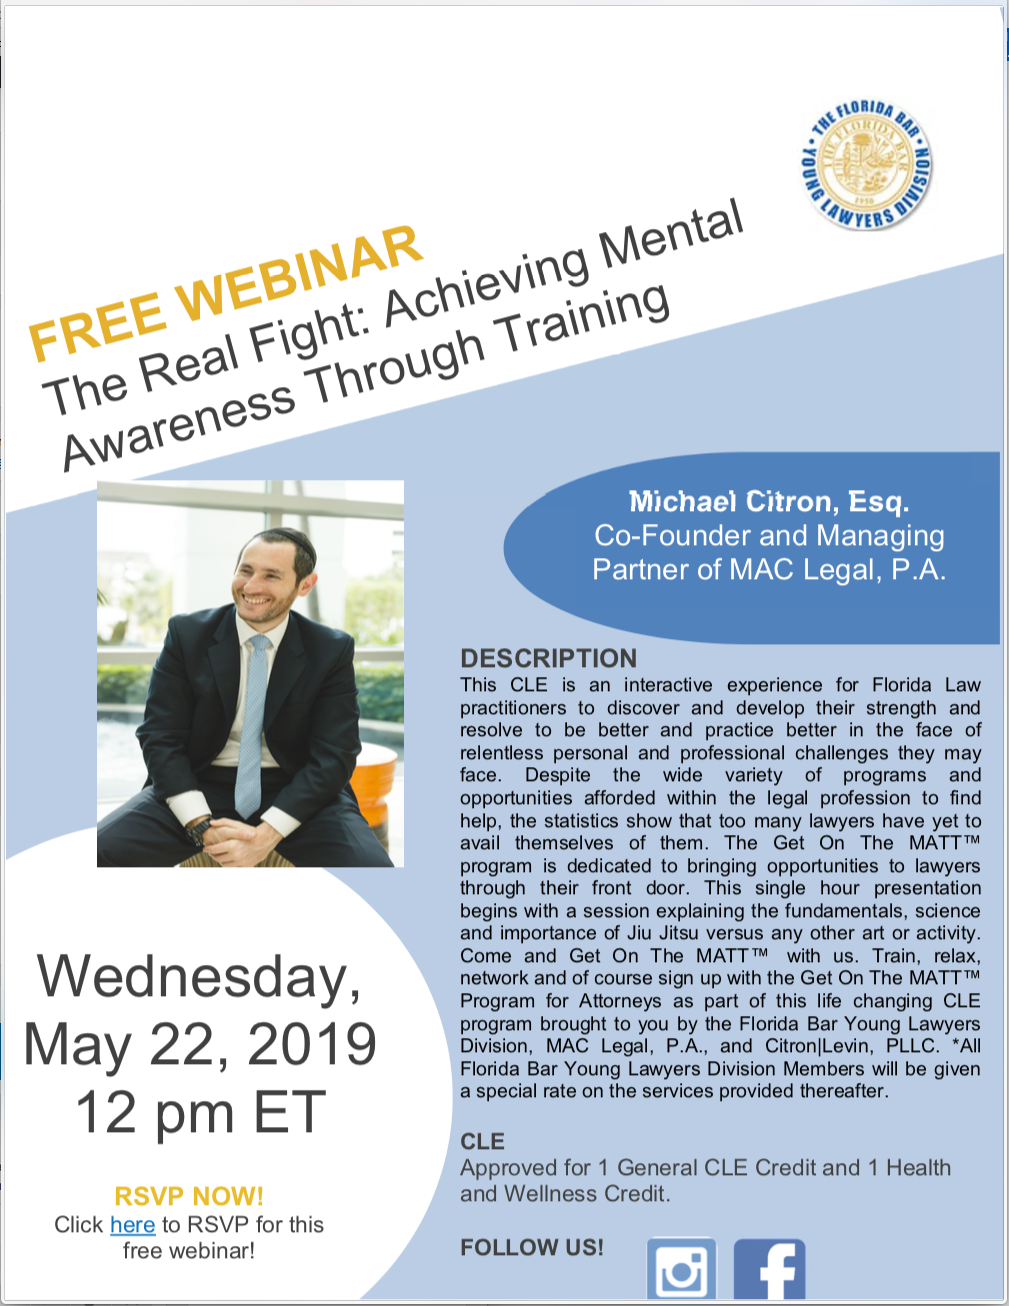 Wednesday, May 22, 2019 @ 12pm EST. Free Webinar: The Real Fight: Achieving Mental Wellness Through Training, Michael Citron, Esq. Co-Founder and Managing Partner of MAC Legal, P.A., DESCRIPTION This CLE is an interactive experience for Florida Law practitioners to discover and develop their strength and resolve to be better and practice better in the face of relentless personal and professional challenges they may face. Despite the wide variety of programs and opportunities afforded within the legal profession to find help, the statistics show that too many lawyers have yet to avail themselves of them. The Get On The MATT™ program is dedicated to bringing opportunities to lawyers through their front door. This single hour presentation begins with a session explaining the fundamentals, science and importance of Jiu Jitsu versus any other art or activity. Come and Get On The MATT™ with us. Train, relax, network and of course sign up with the Get On The MATT™ Program for Attorneys as part of this life changing CLE program brought to you by the Florida Bar Young Lawyers Division, MAC Legal, P.A., and Citron|Levin, PLLC. *All Florida Bar Young Lawyers Division Members will be given a special rate on the services provided thereafter. CLE Approved for 1 General CLE Credit and 1 Health and Wellness Credit. RSVP NOW! Click here to RSVP for this free webinar!